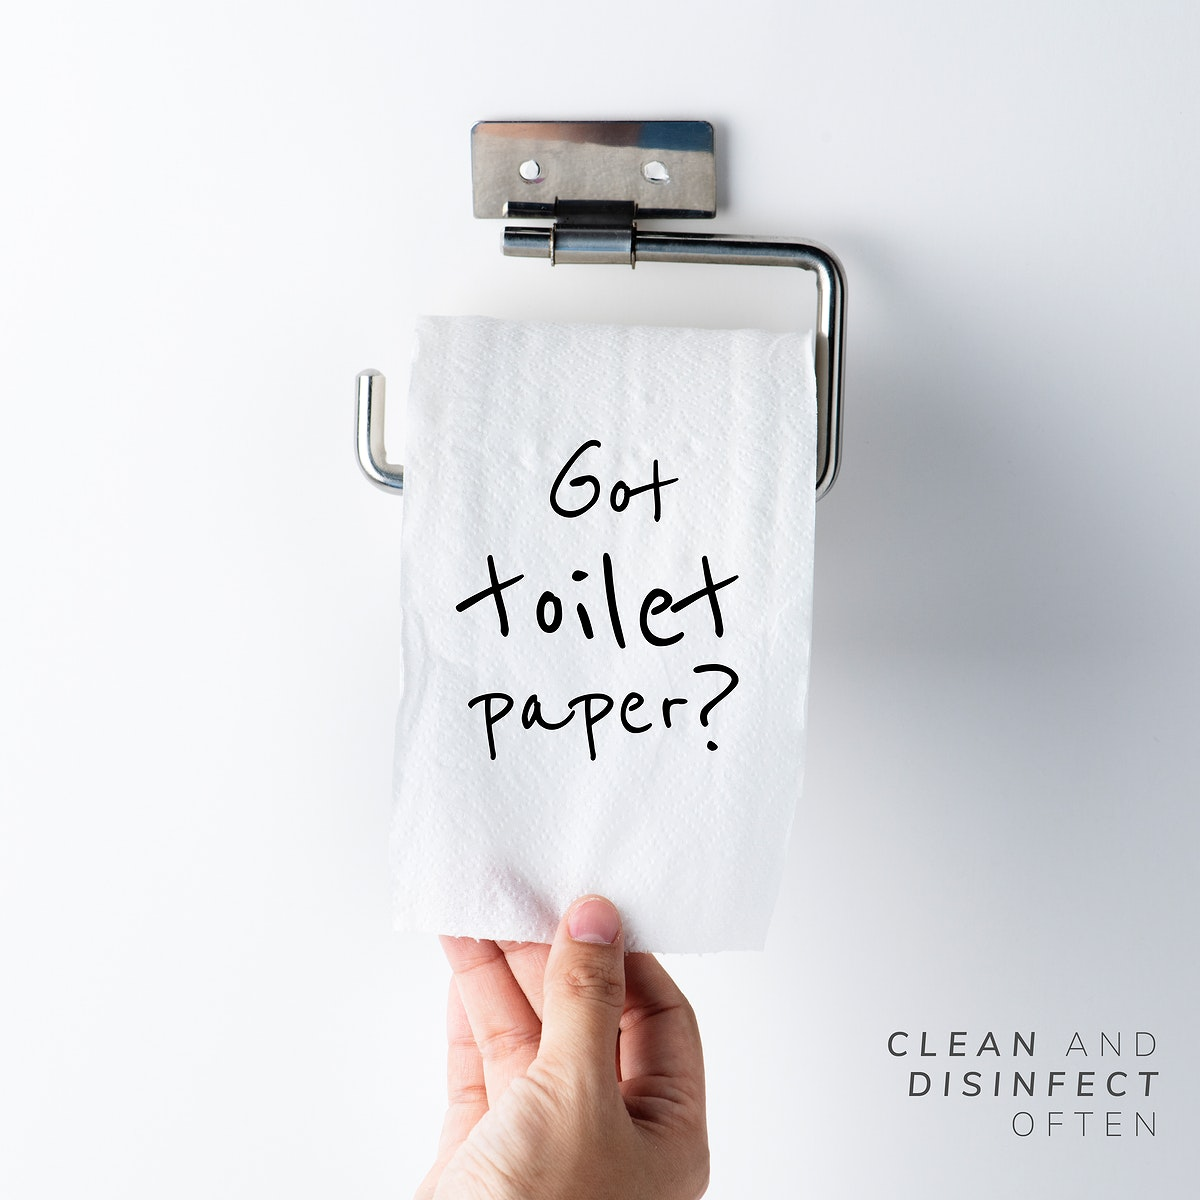 Got toilet paper? Clean and disinfect often during the global covid-19 pandemic vector